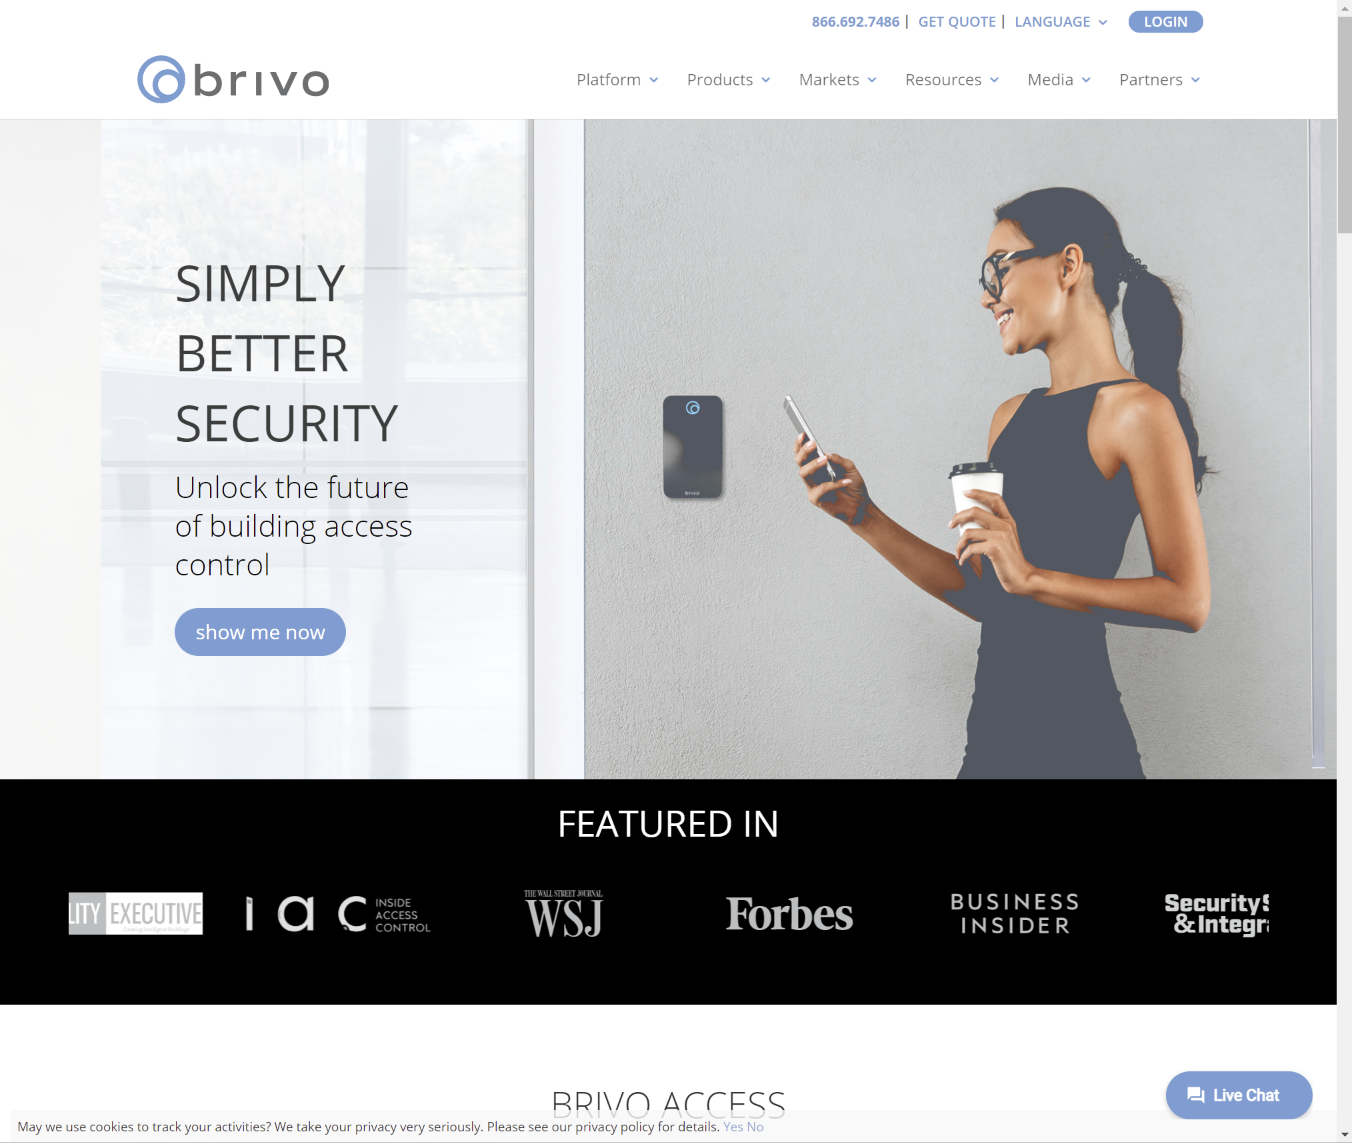 Cloud Access Control by Brivo